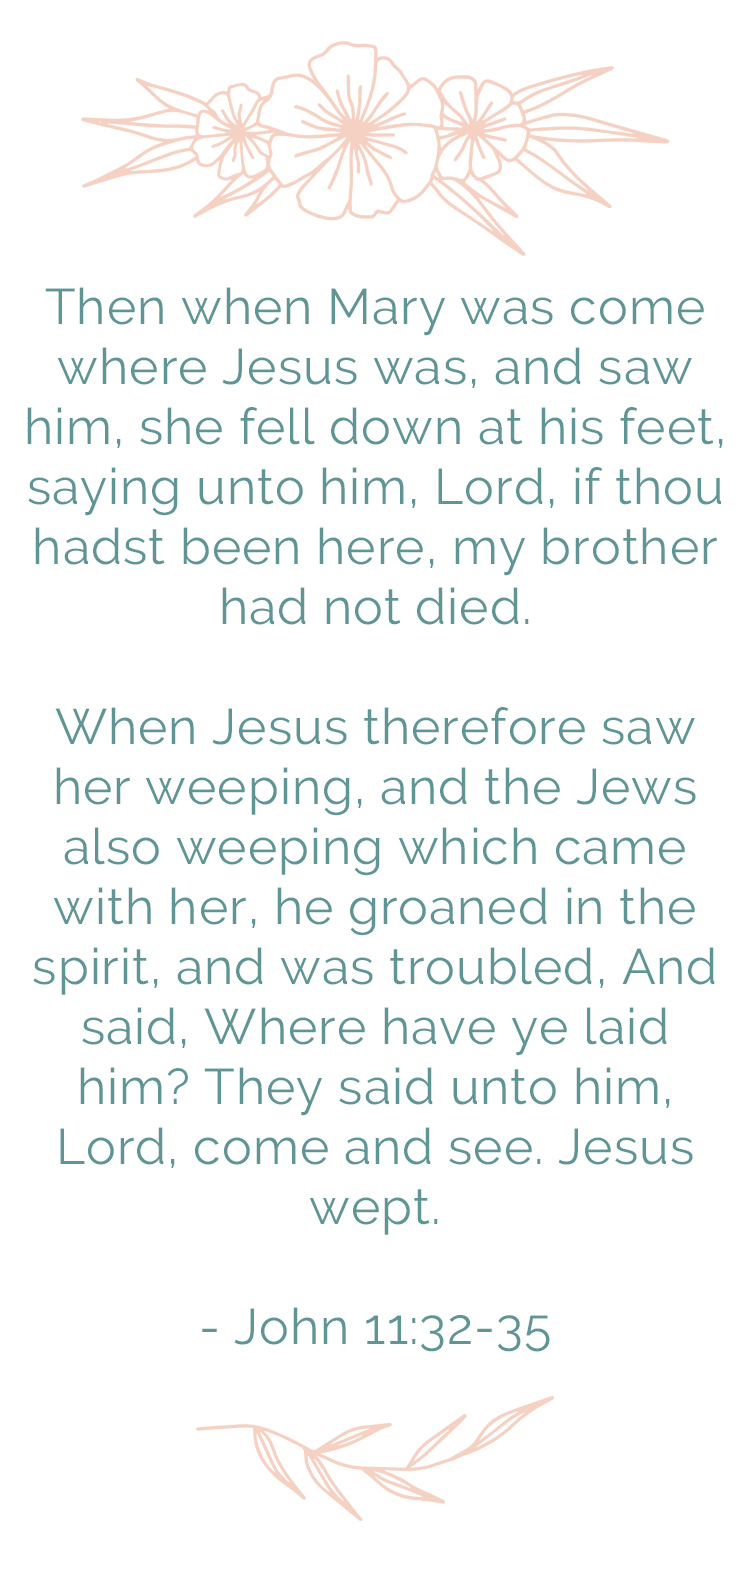 Then when Mary was come where Jesus was, and saw him, she fell down at his feet, saying unto him, Lord, if thou hadst been here, my brother had not died. When Jesus therefore saw her weeping, and the Jews also weeping which came with her, he groaned in the spirit, and was troubled, And said, Where have ye laid him? They said unto him, Lord, come and see. Jesus wept. John 11:32-35